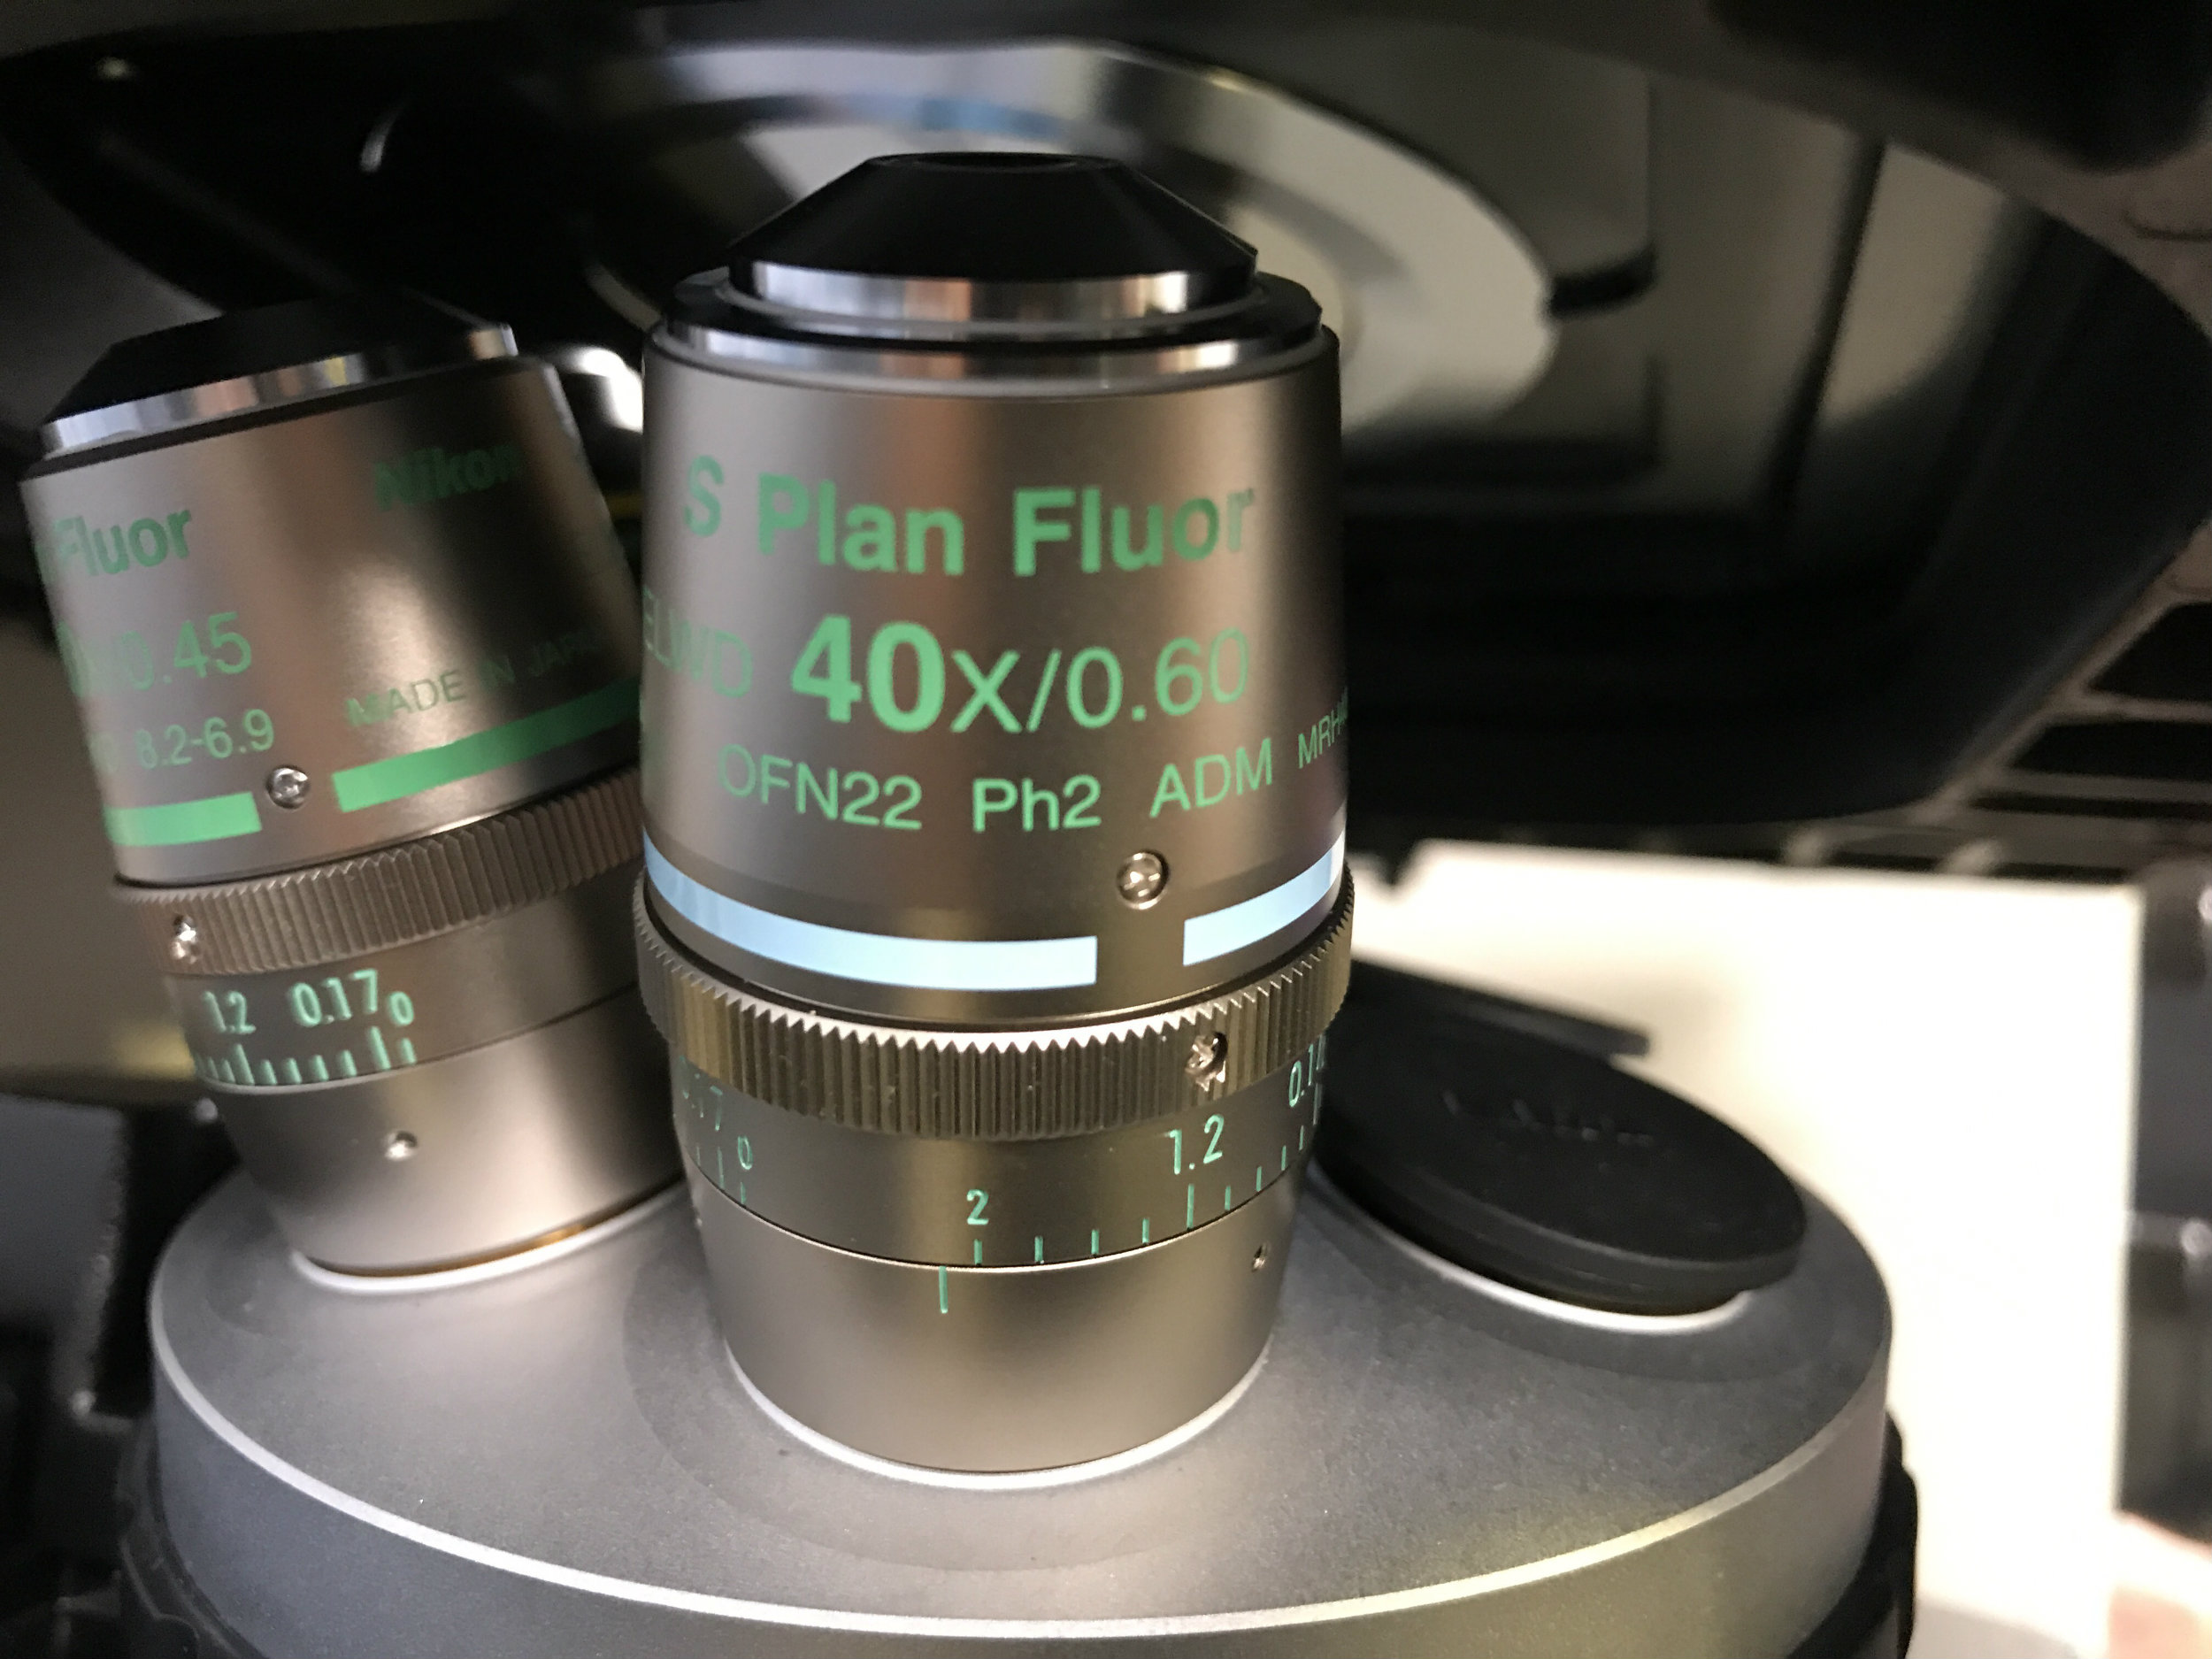 Refurbished Nikon Eclipse Ti-S/L100 Inverted Phase Contrast